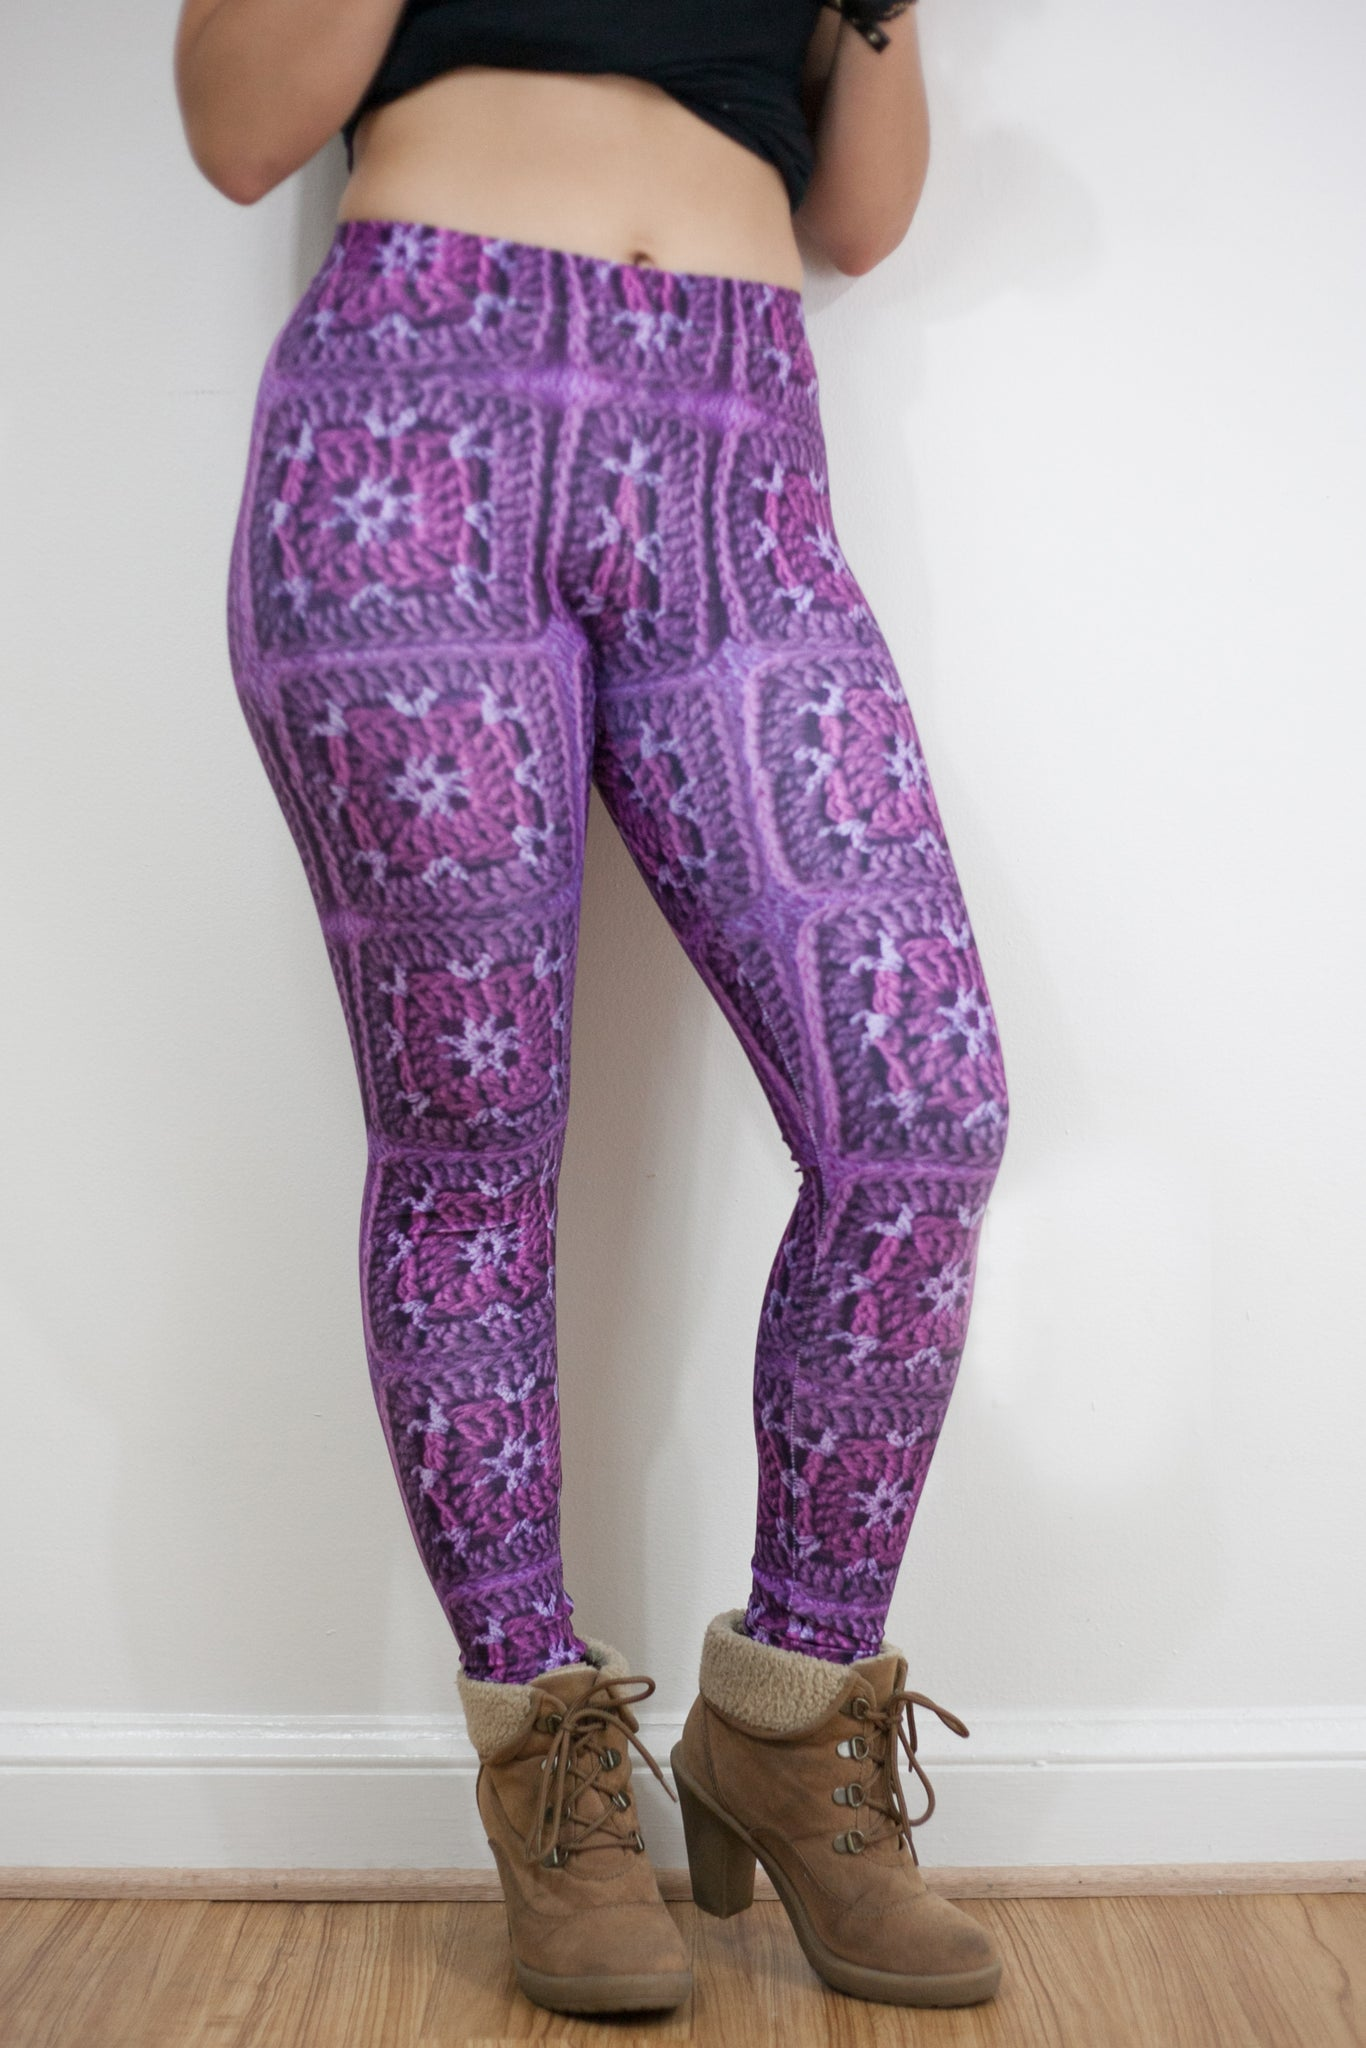 'Rose Dust' Crochet Print Granny Square Leggings